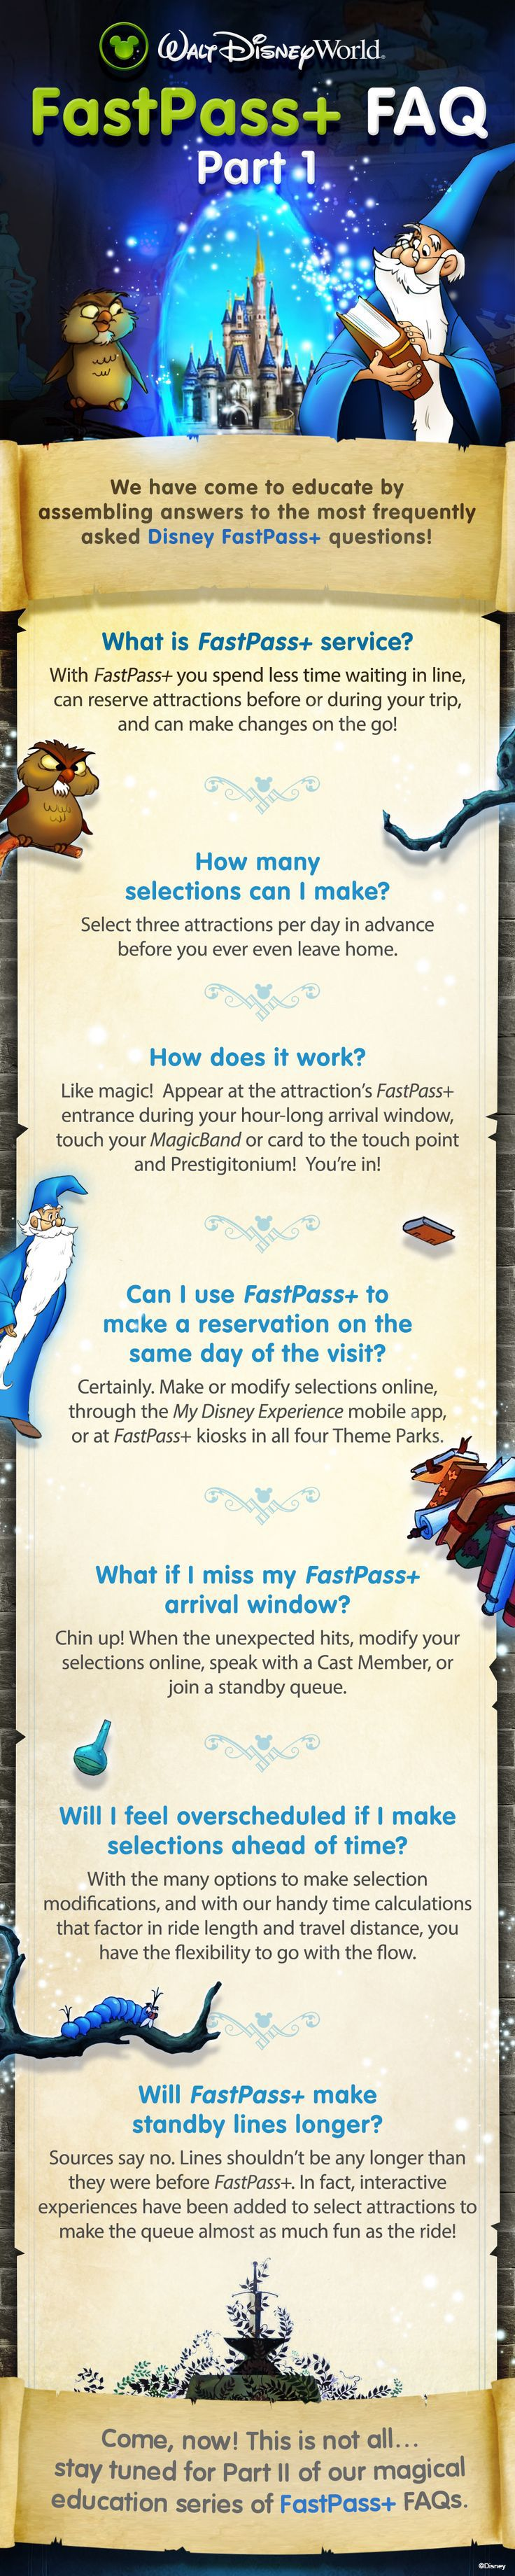 Curious about how to take advantage of FastPass+ during a trip to the Walt Disney World Resort? Here are the answers to some of the most frequently asked FastPass+ questions!